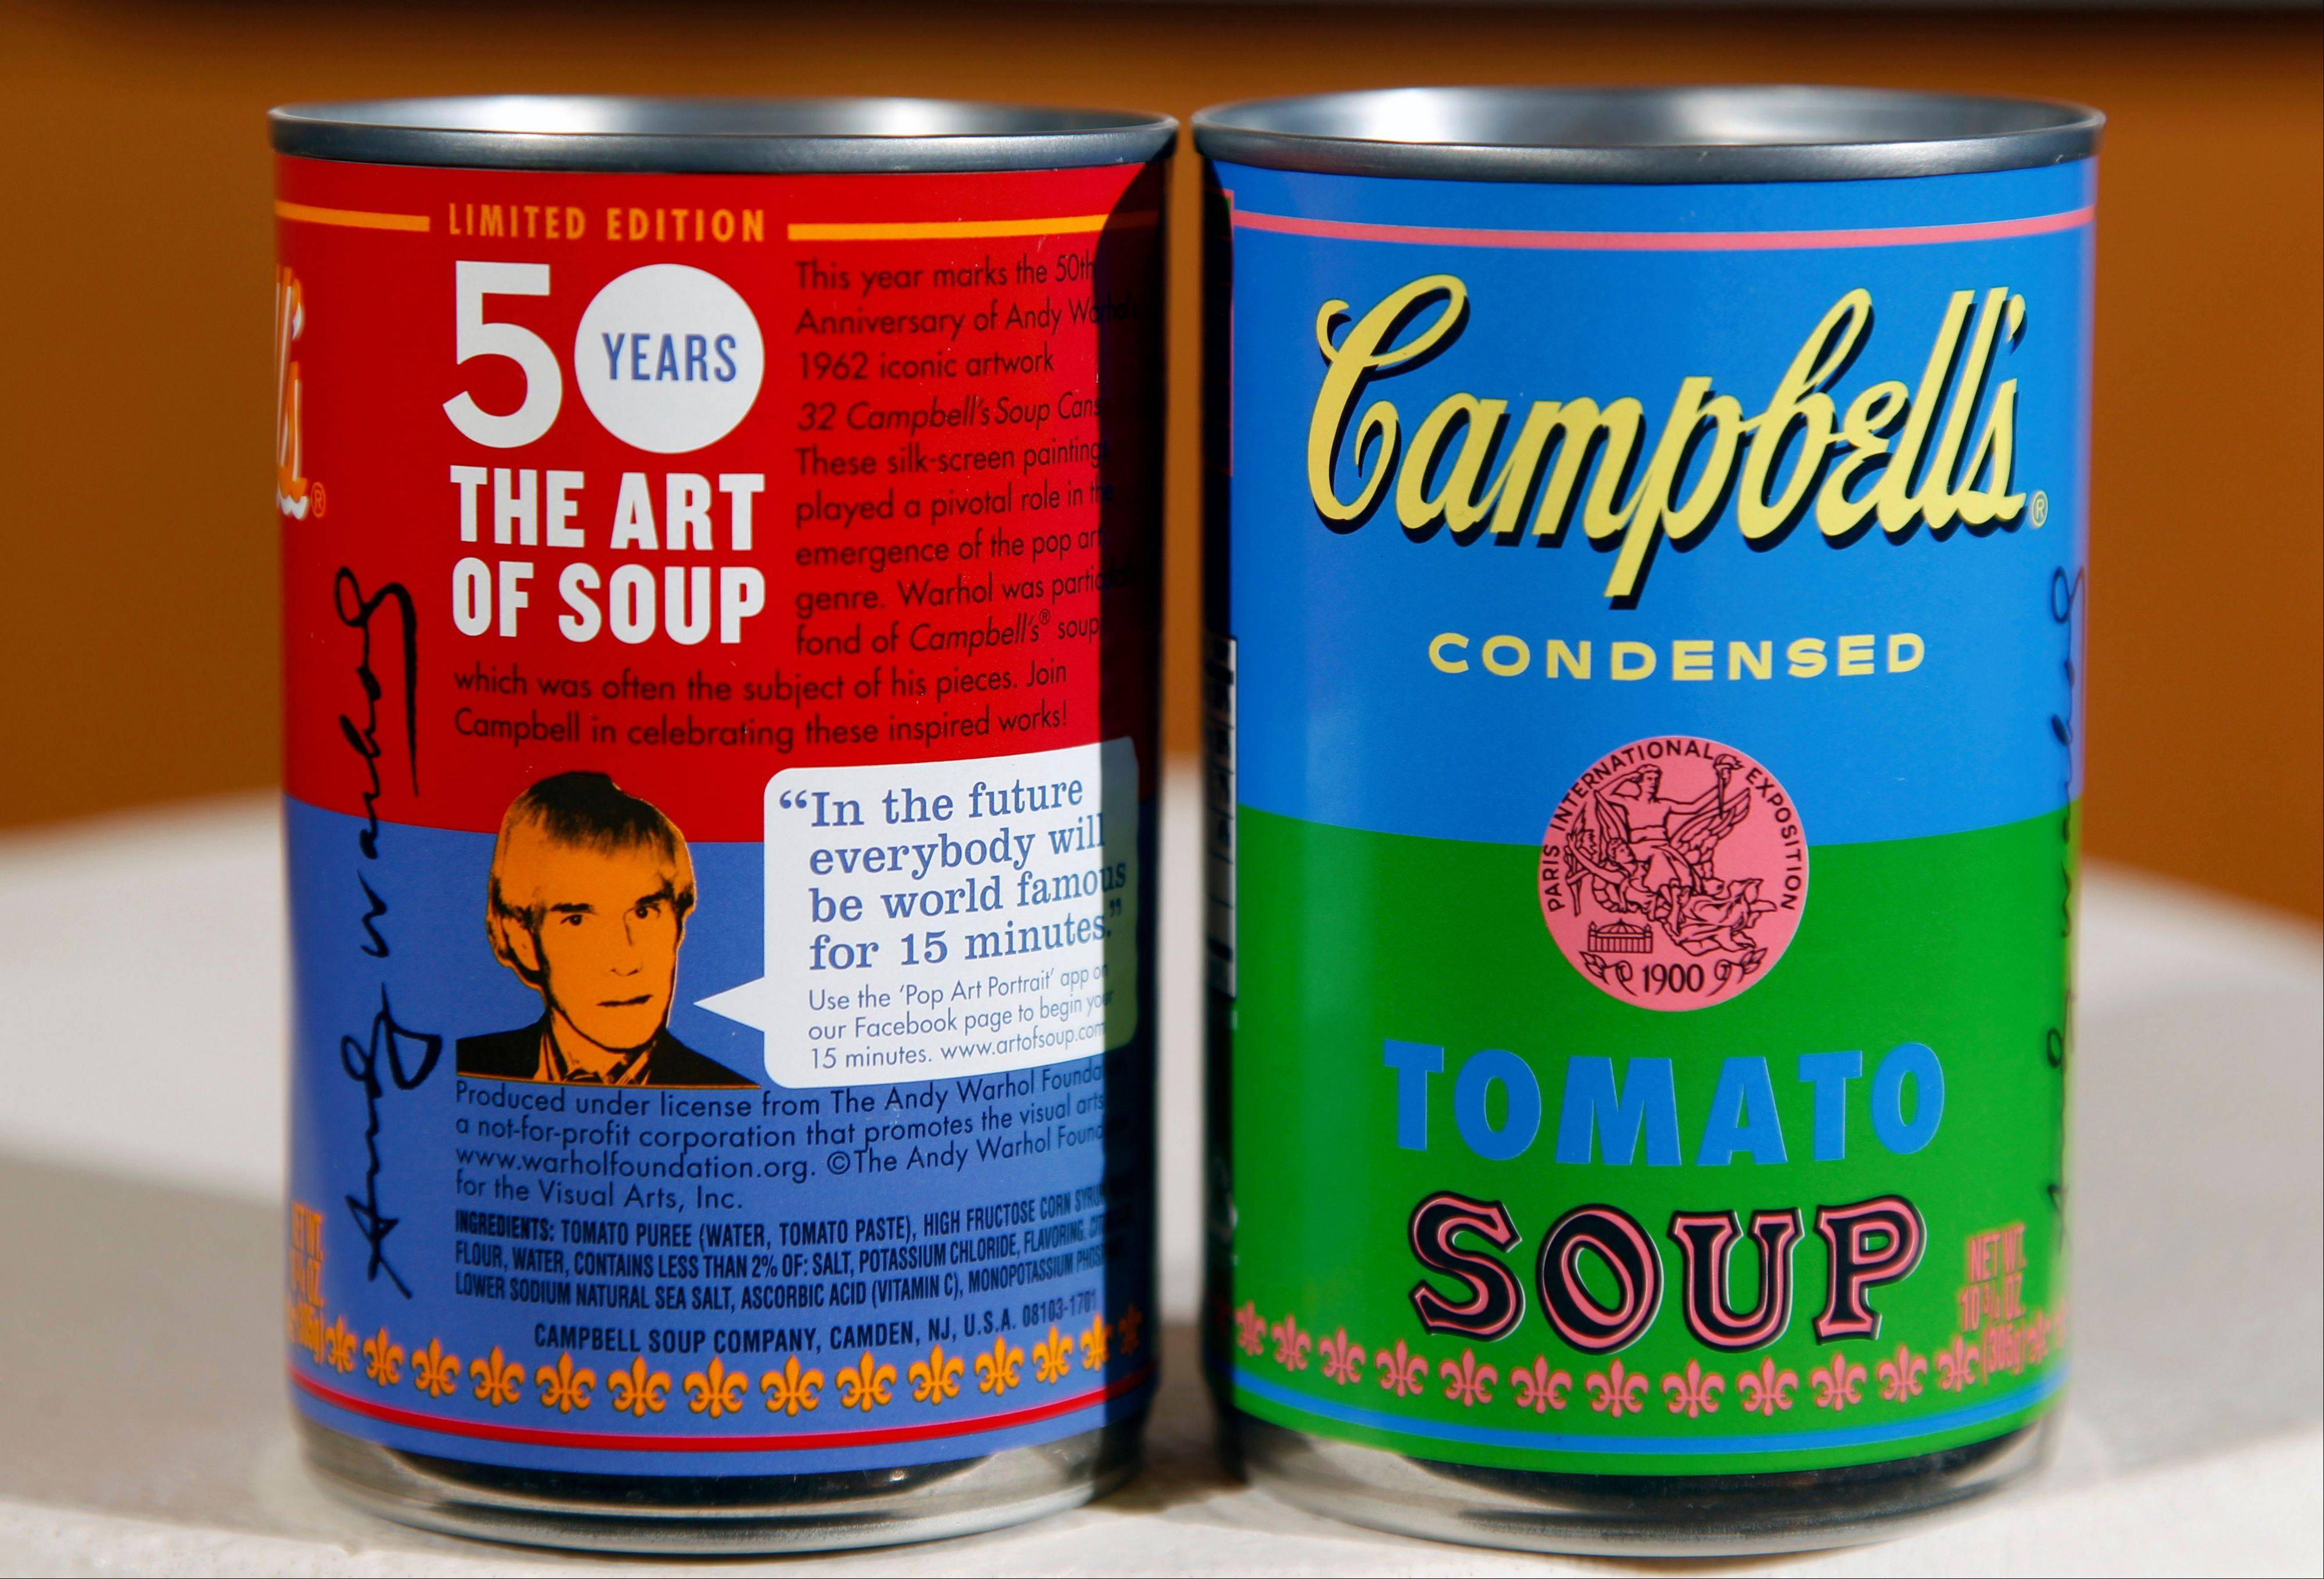 New limited edition Campbell's tomato soup cans with art and sayings by artist Andy Warhol are seen at Campbell Soup Company in Camden, N.J. Campbell plans to introduce the special-edition cans of its condensed tomato soup bearing labels reminiscent of the pop artist's paintings at Target stores starting Sunday, Sept. 2, 2012.